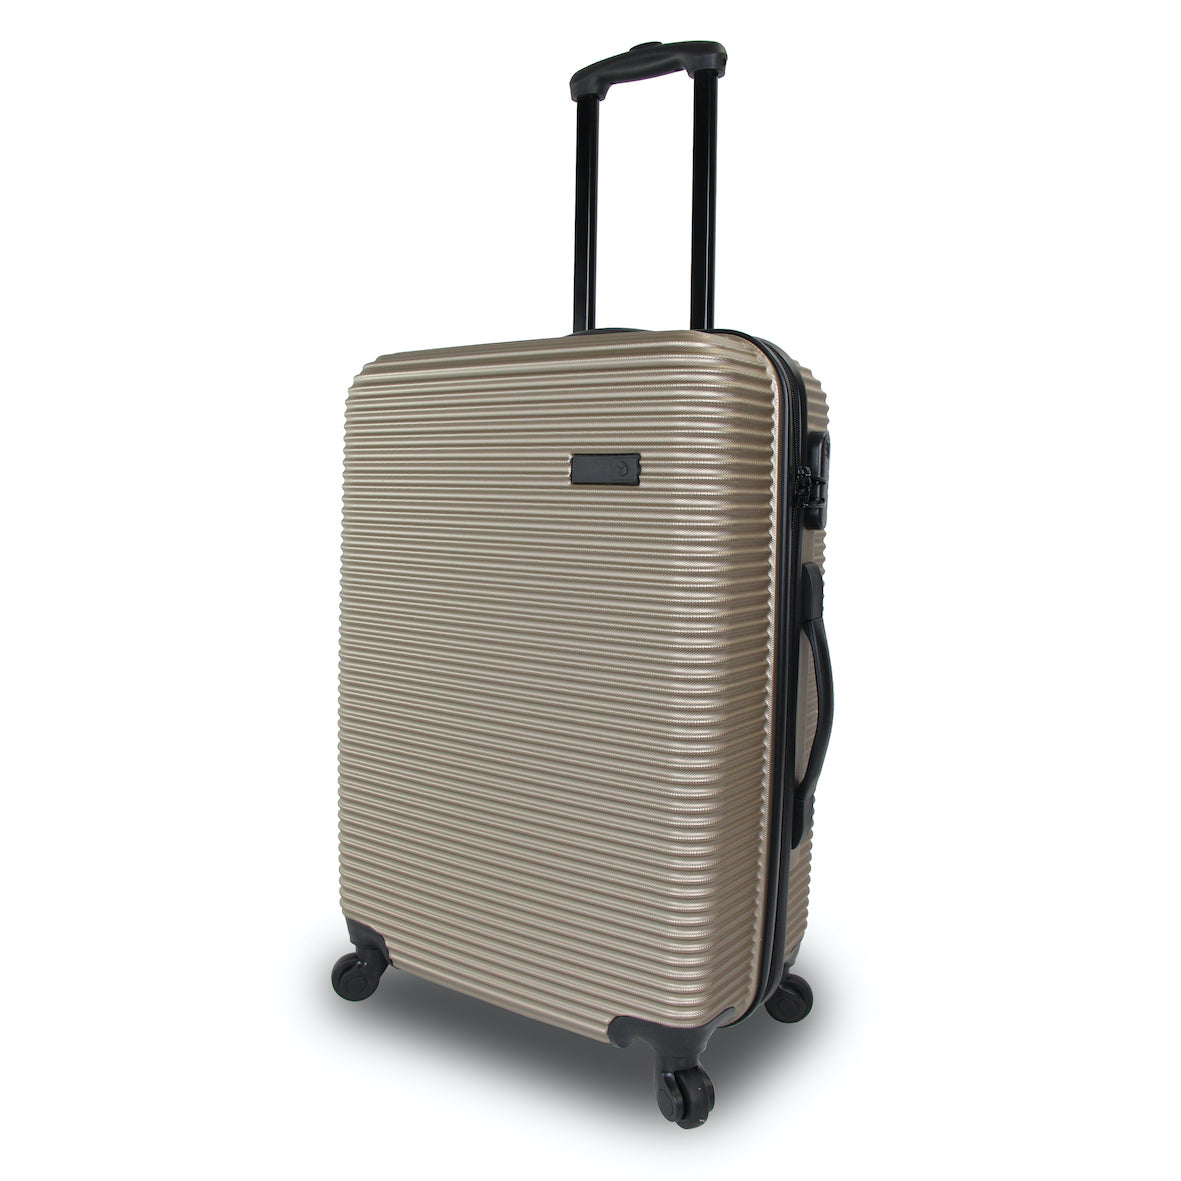 Qubed Collinear 67cm Medium 4-Wheel Spinner Suitcase